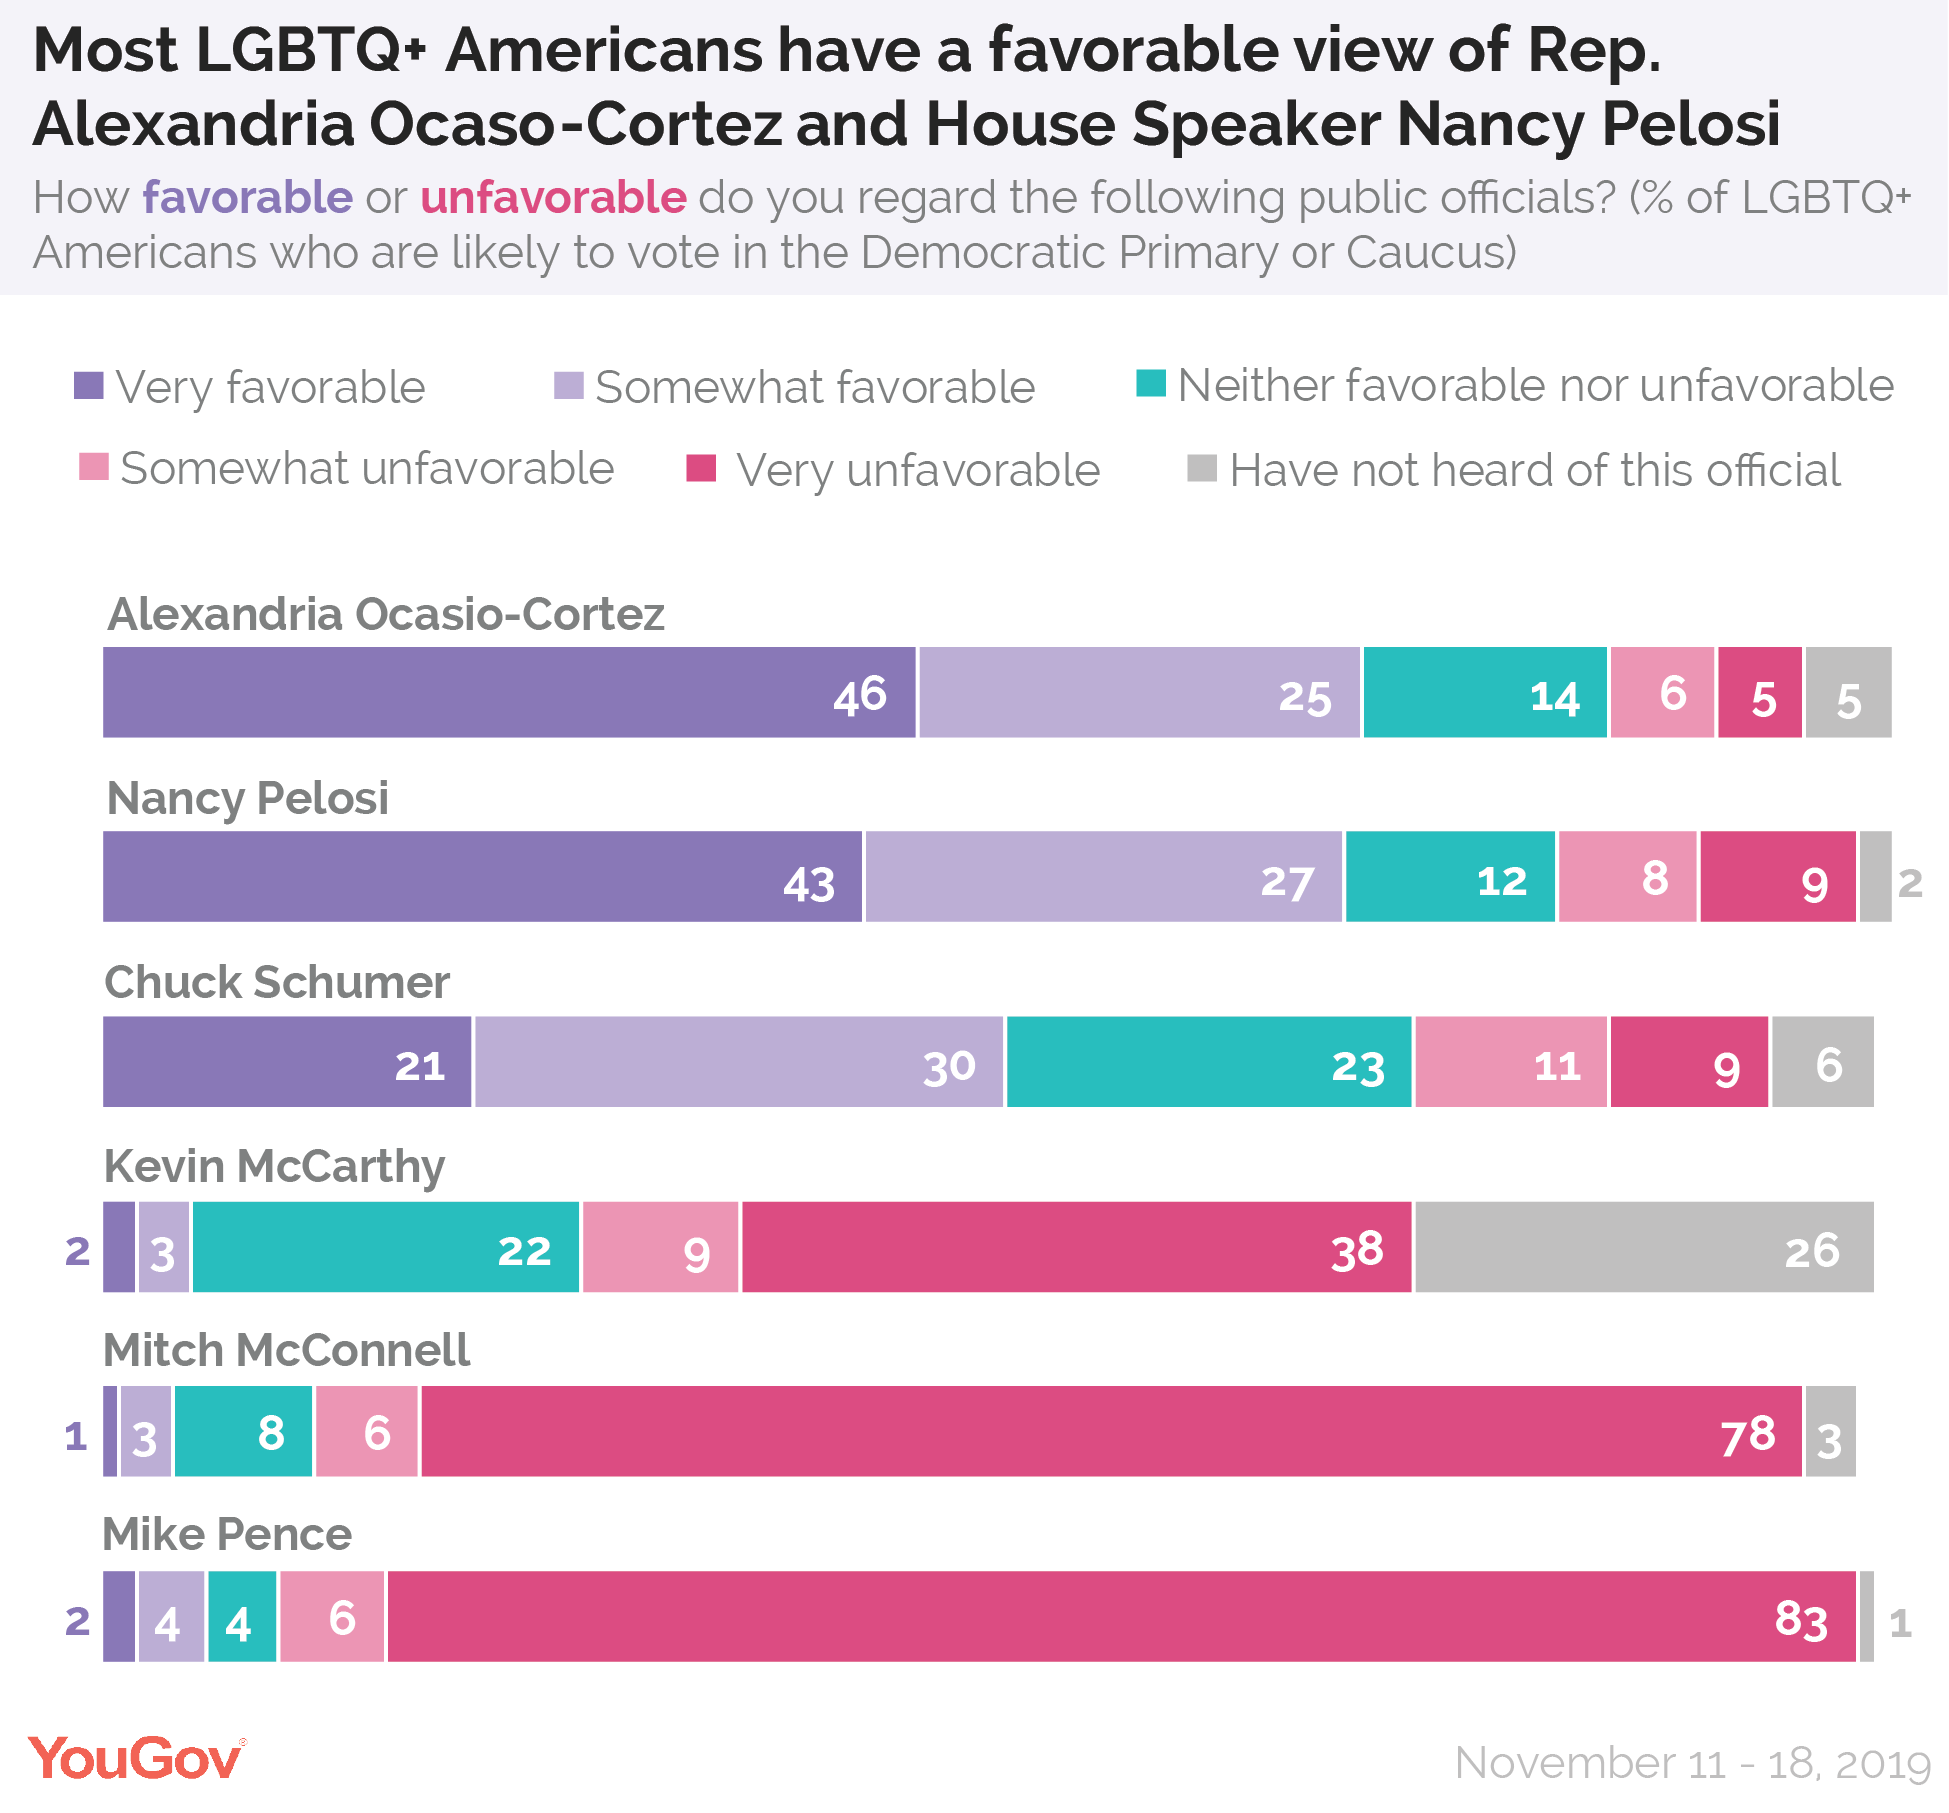 Most LGBTQ+ Americans have a favorable view of Rep Alexandria Ocasio-Cortez and House Speaker Nancy Pelosi